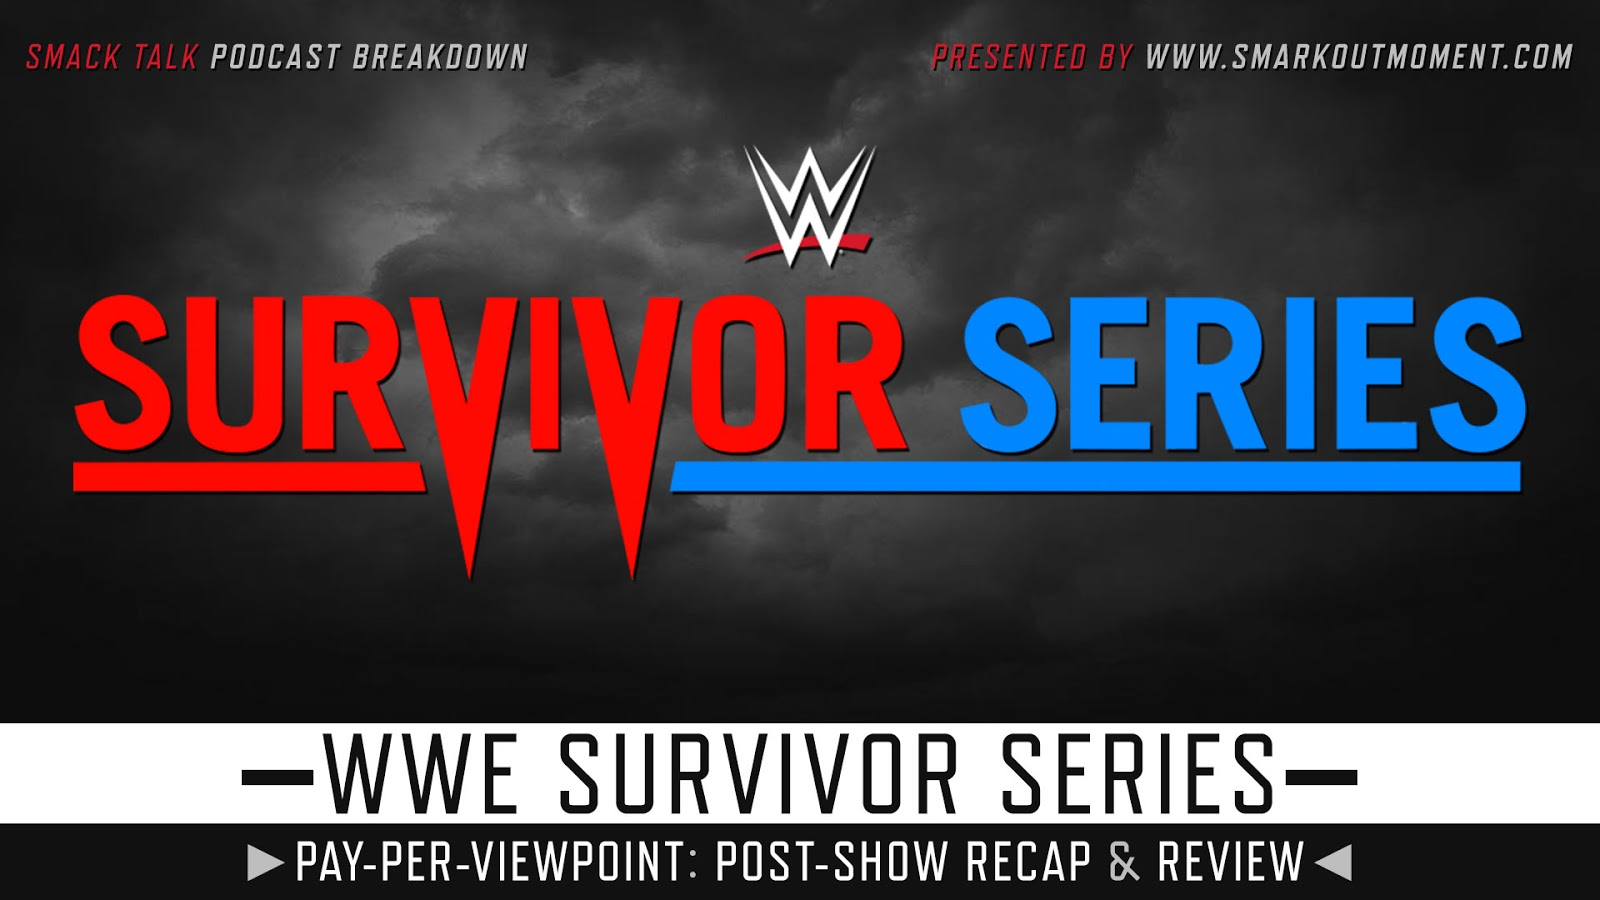 WWE Survivor Series 2018 Recap and Review Podcast